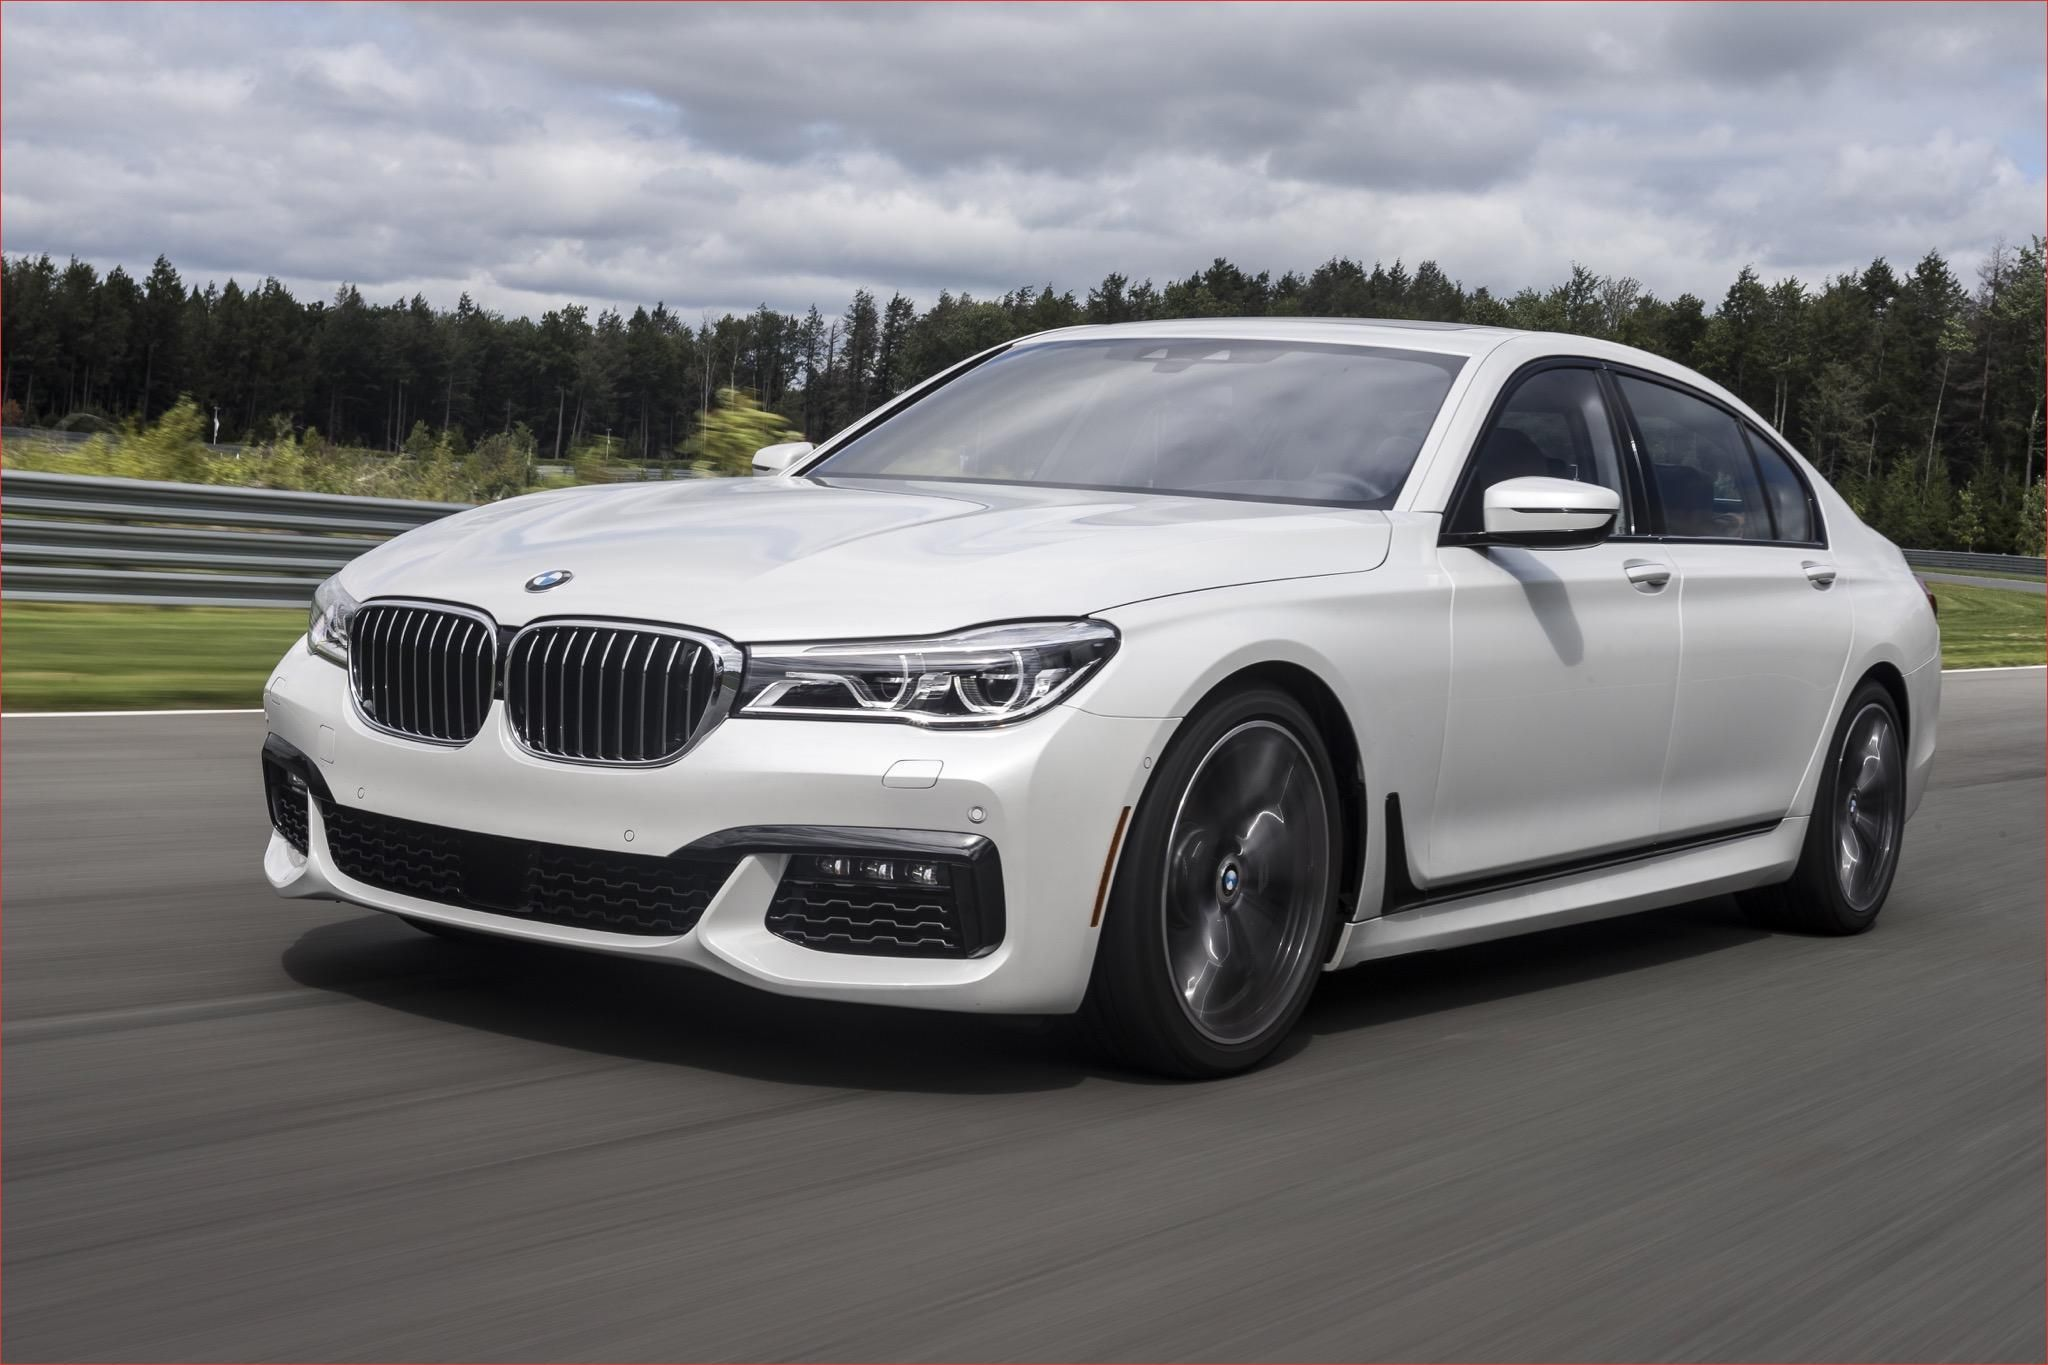 Best Of Bmw 740li 2017 White Bmw Bmw 2017 Bmw Bmw 7 Series